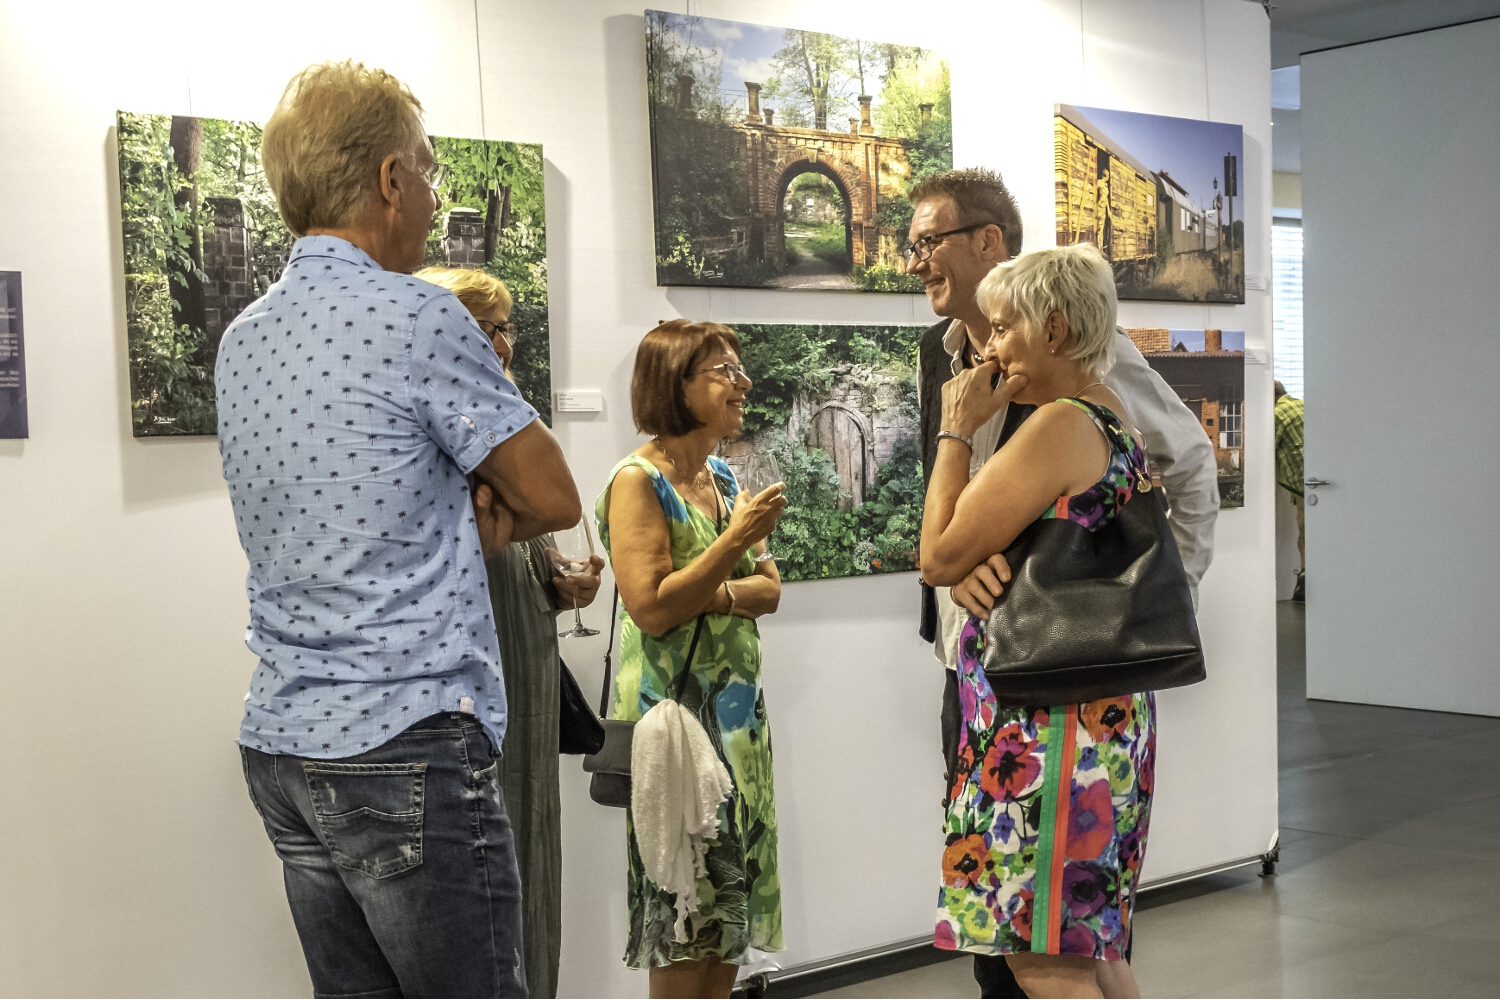 Vernissage Ausstellung LIVING ART - KSK Heilbronn